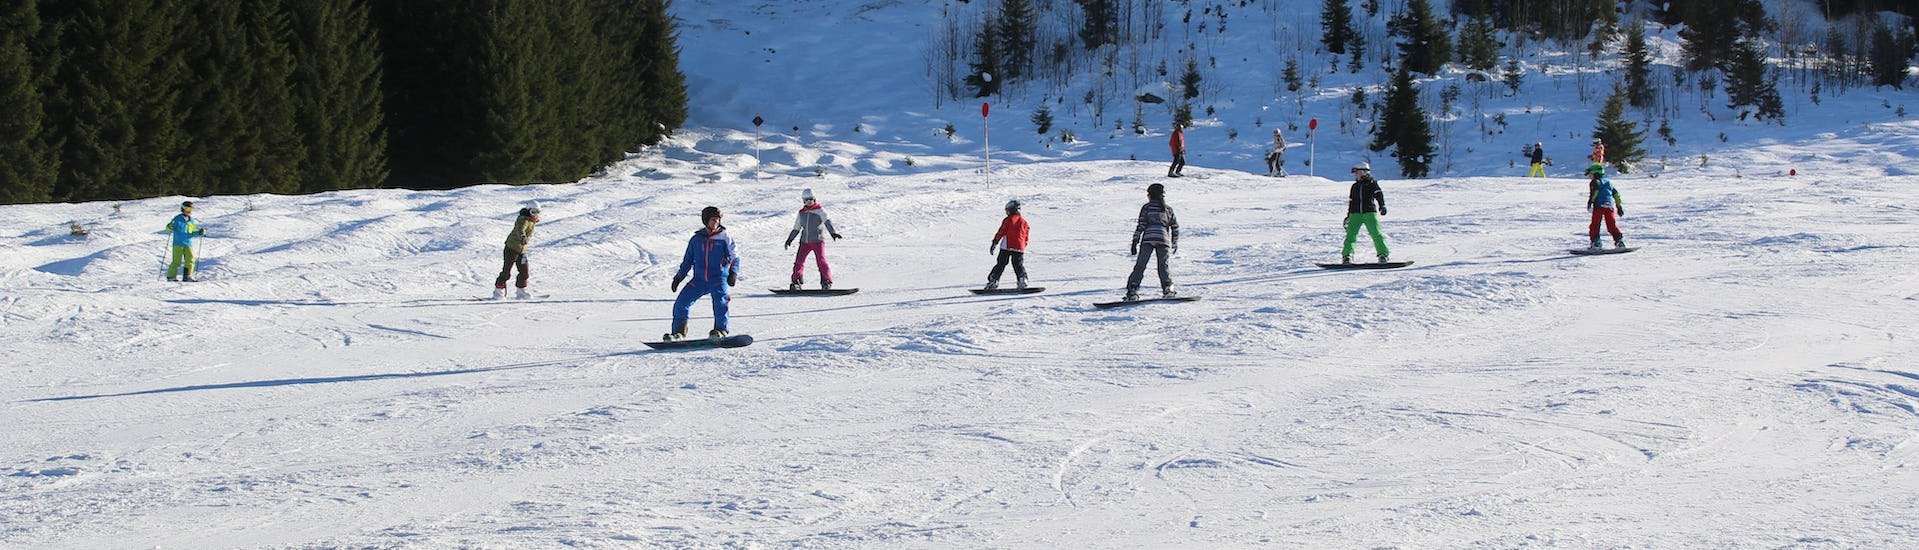 Snowboard Lessons Teens & Adults - All Levels